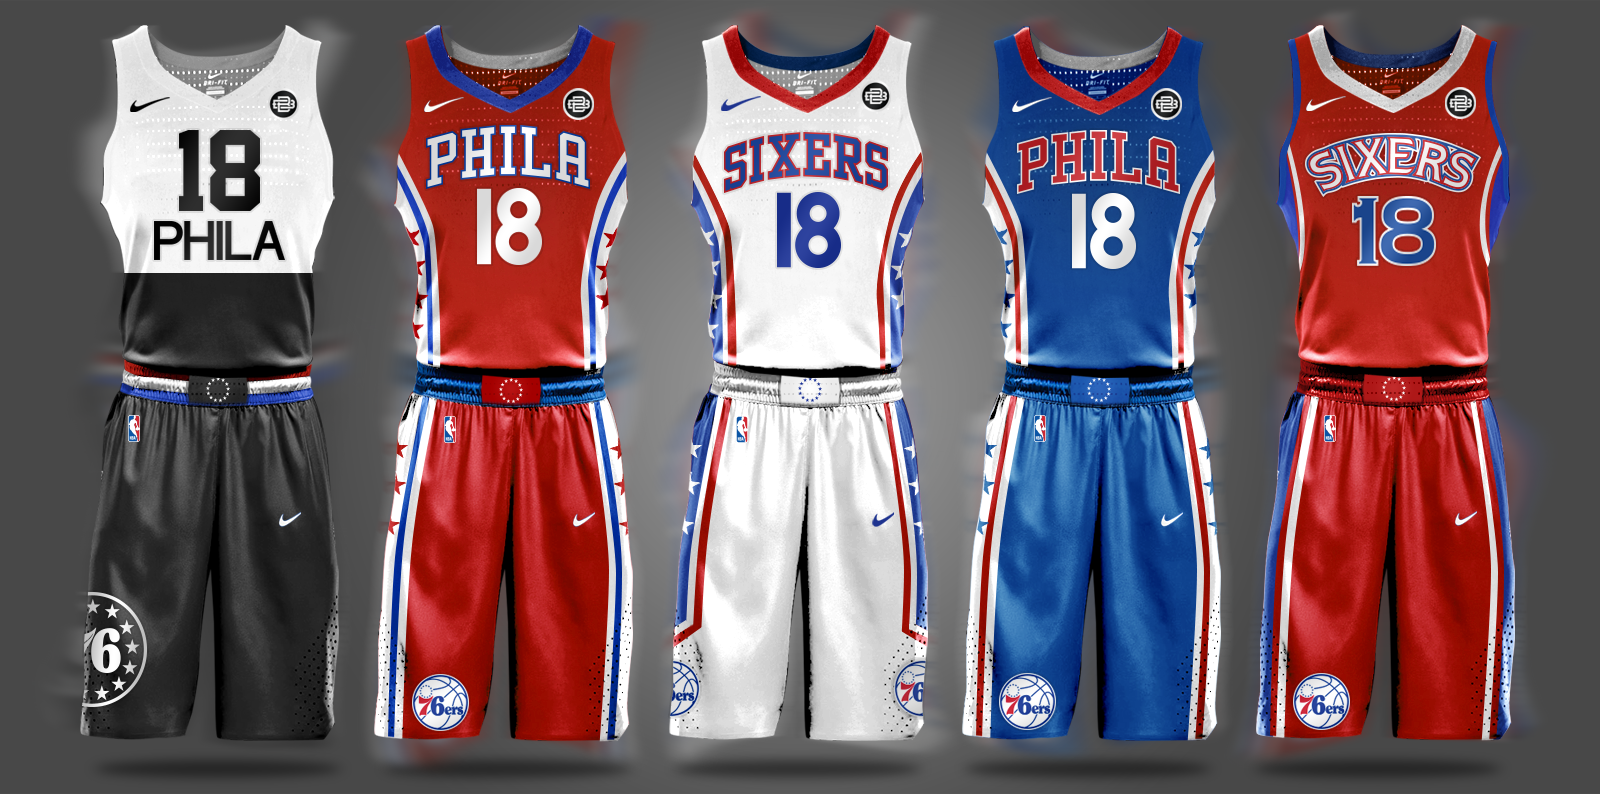 189b5c9b727 Philadelphia Sixers 76ers NBA Free Agency Ish Smith Allen Iverson Philly  Will Smith Big3 Big 3